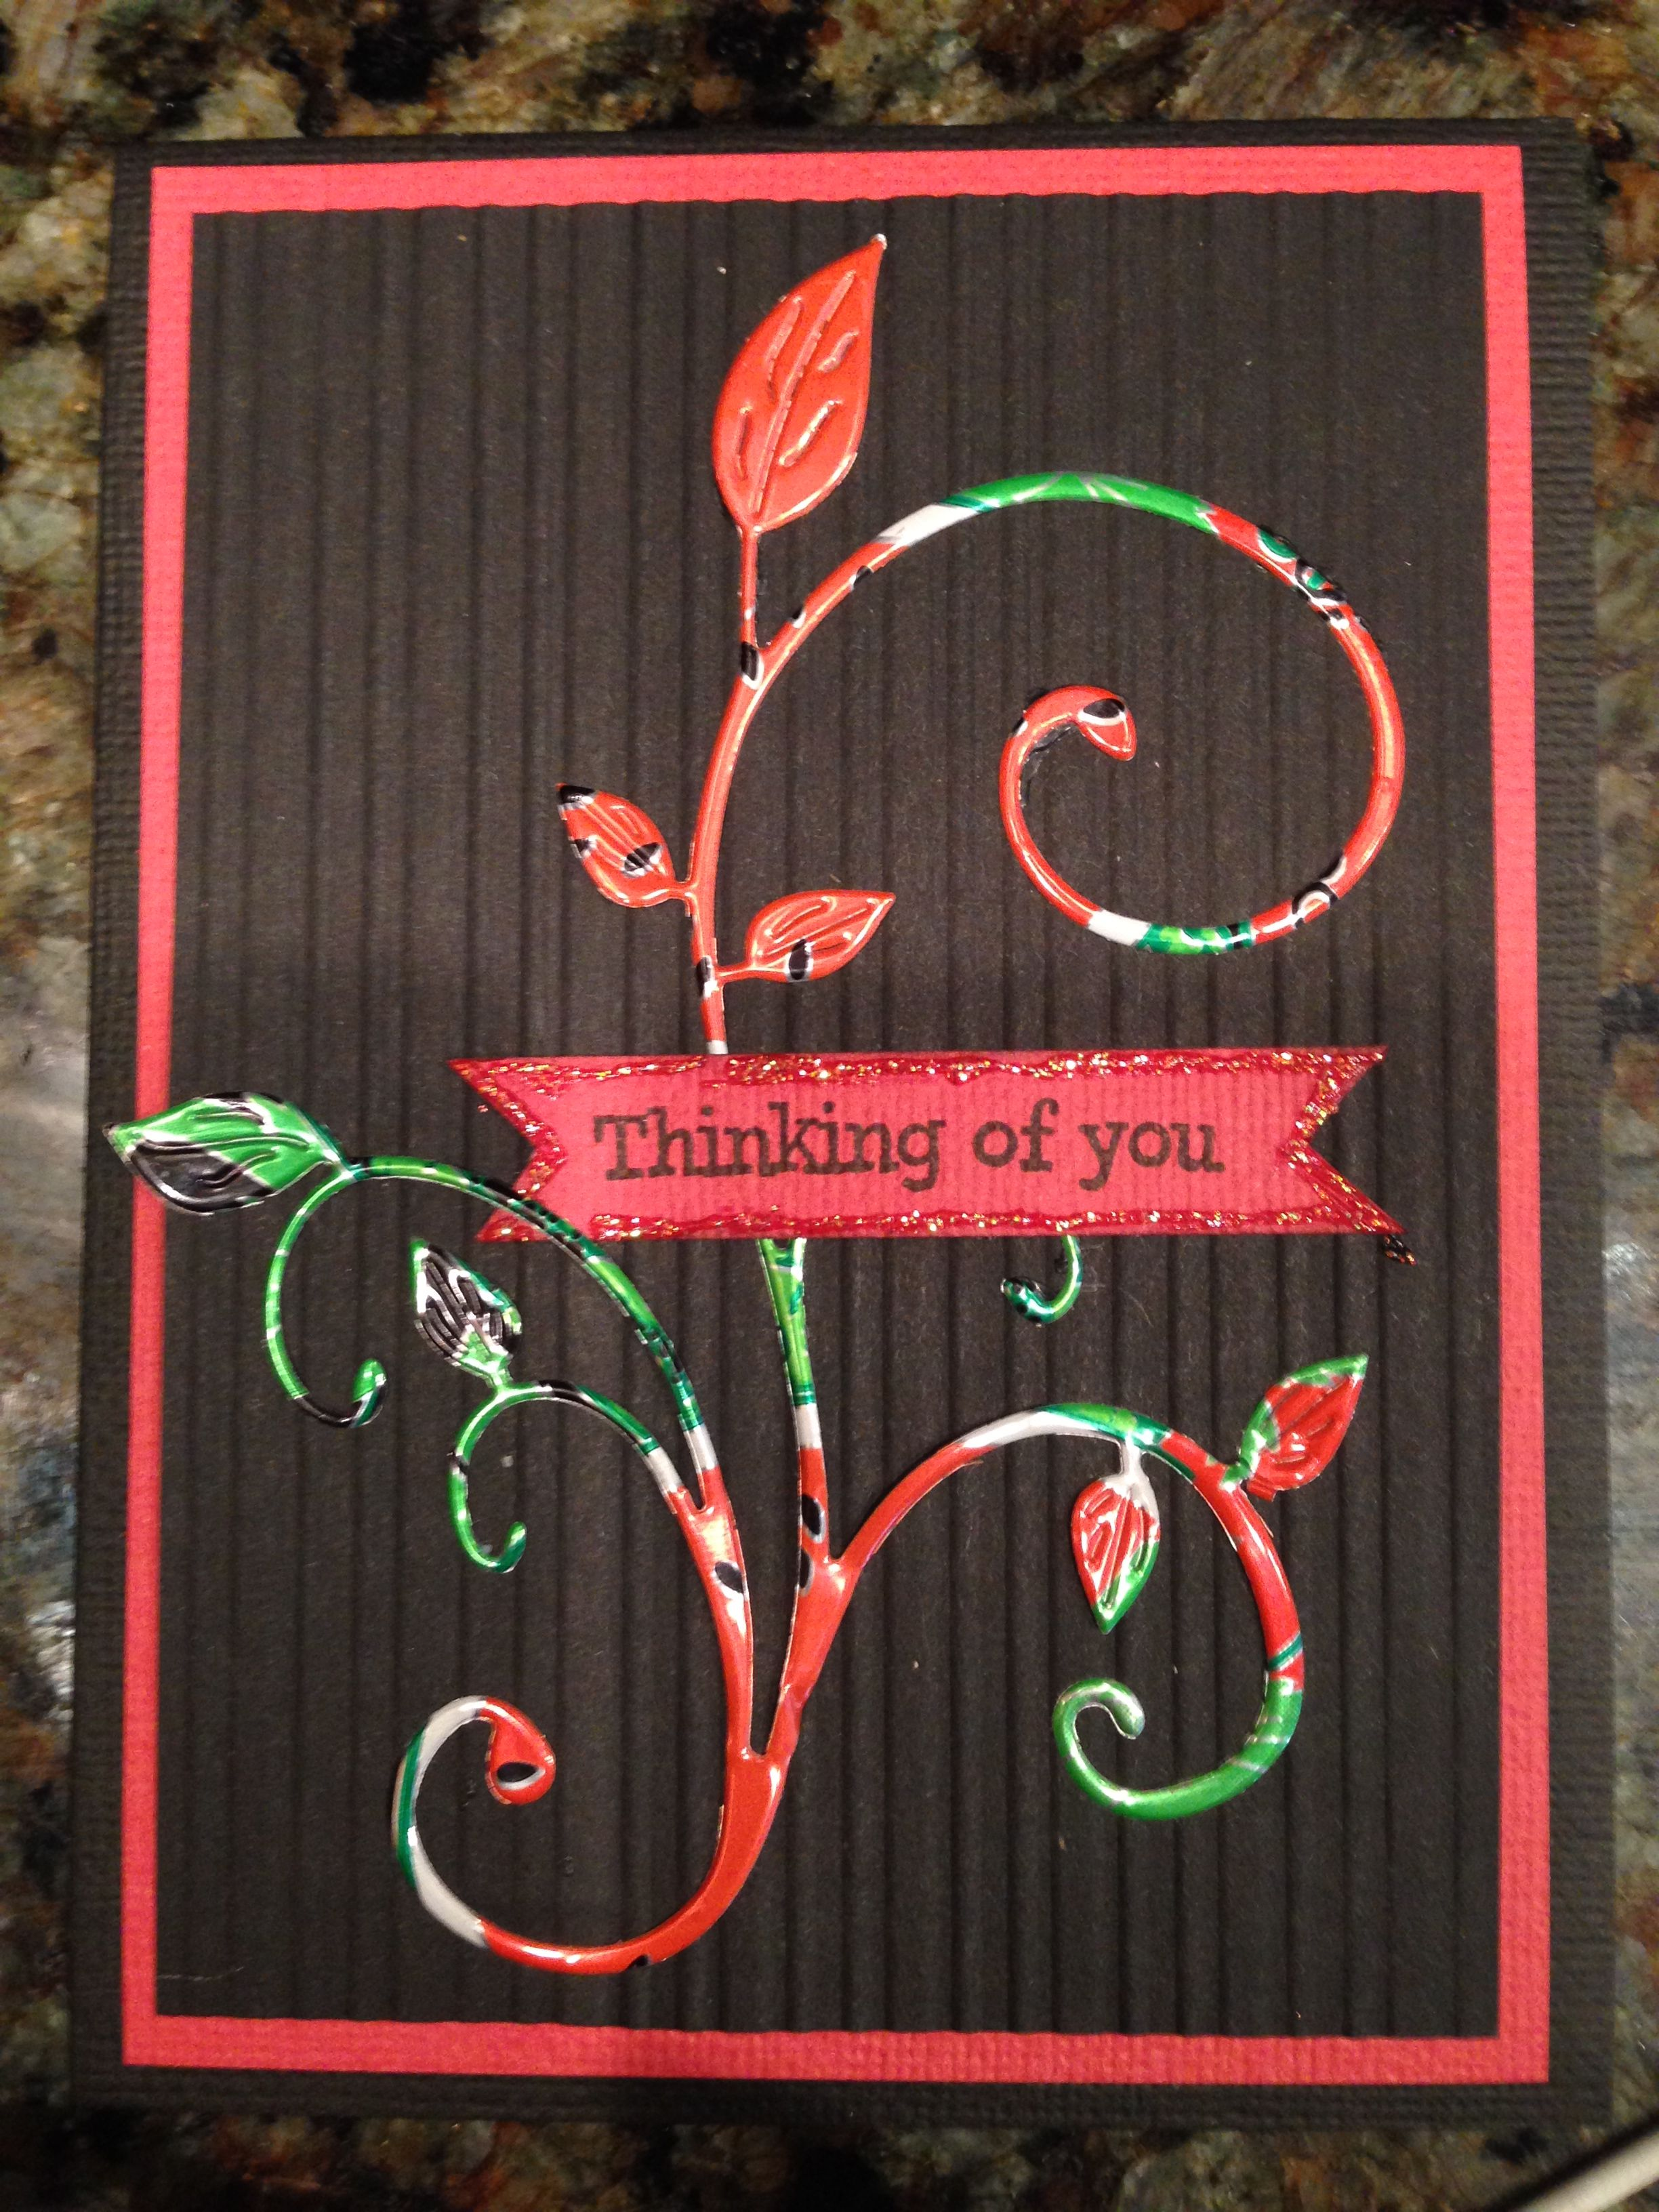 Thinking of you card - used an AZ drink watermelon flavored aluminum can and cut out the shape with a cheery lynn die cut.